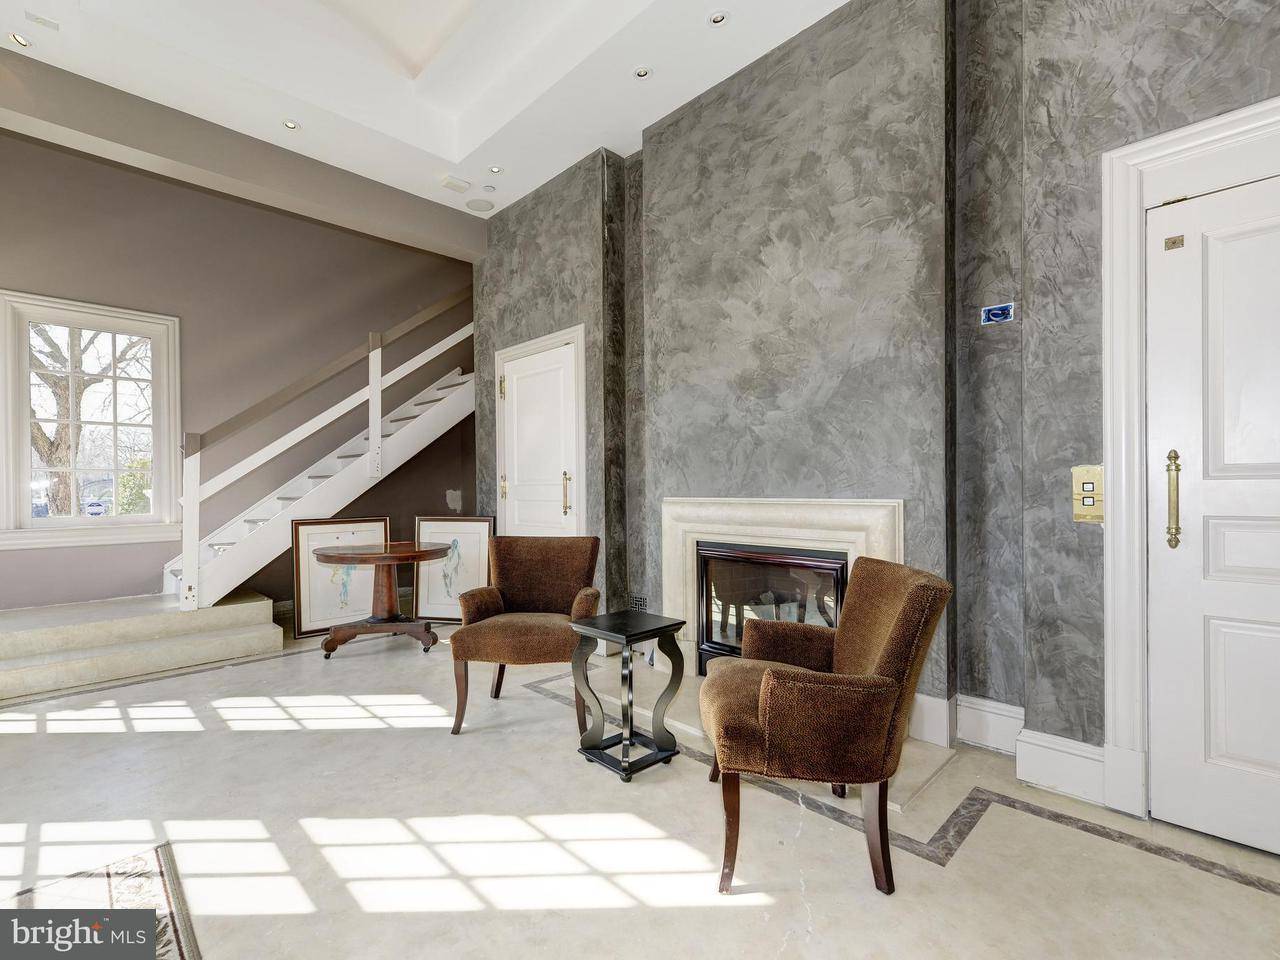 Additional photo for property listing at 1400 Meade St N  Arlington, Virginia 22209 United States